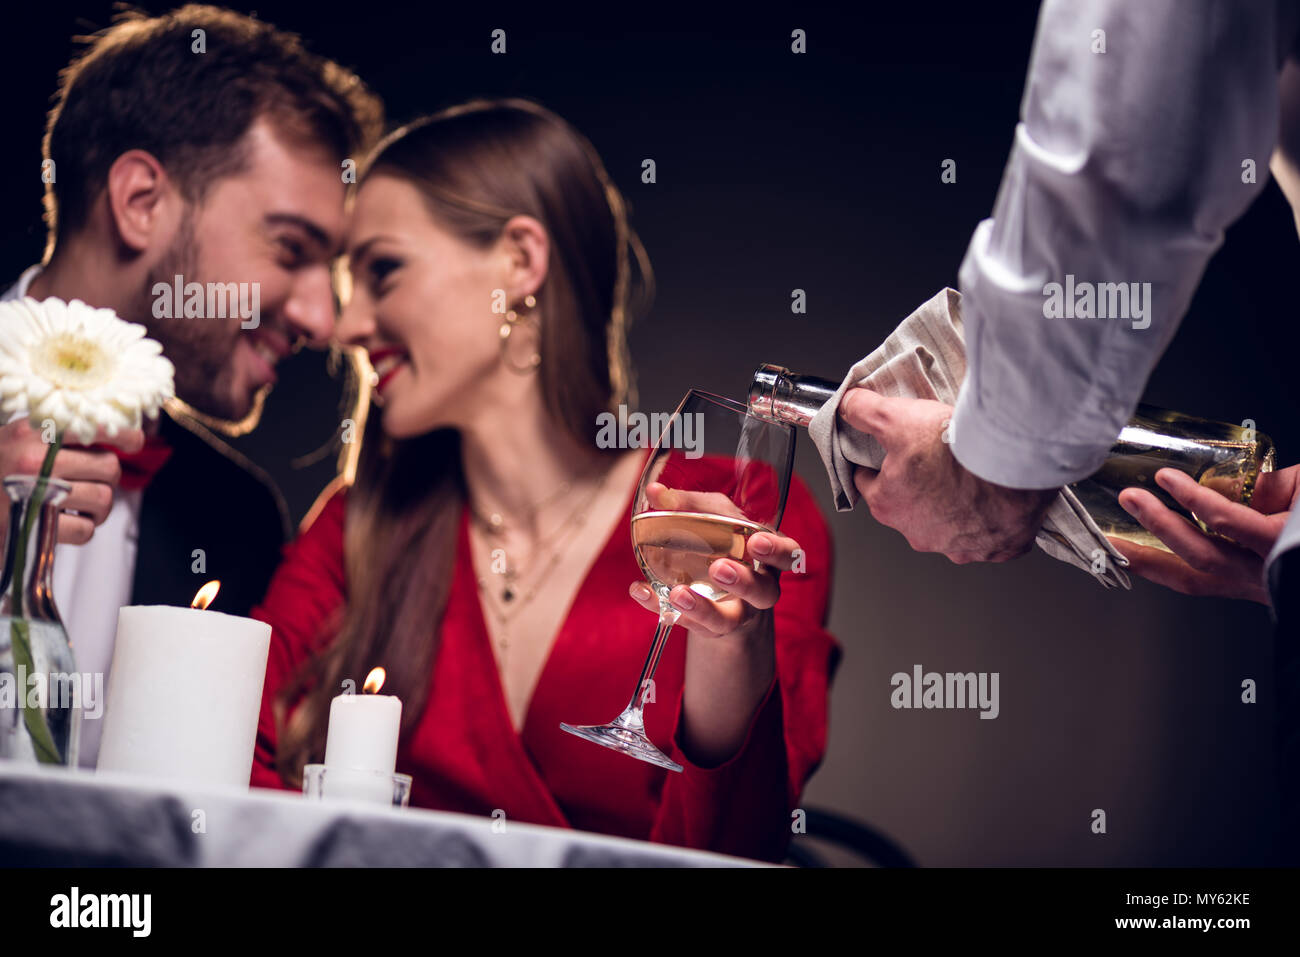 Waiter pouring wine while smiling couple having date romantique au restaurant le Jour de Valentines Photo Stock